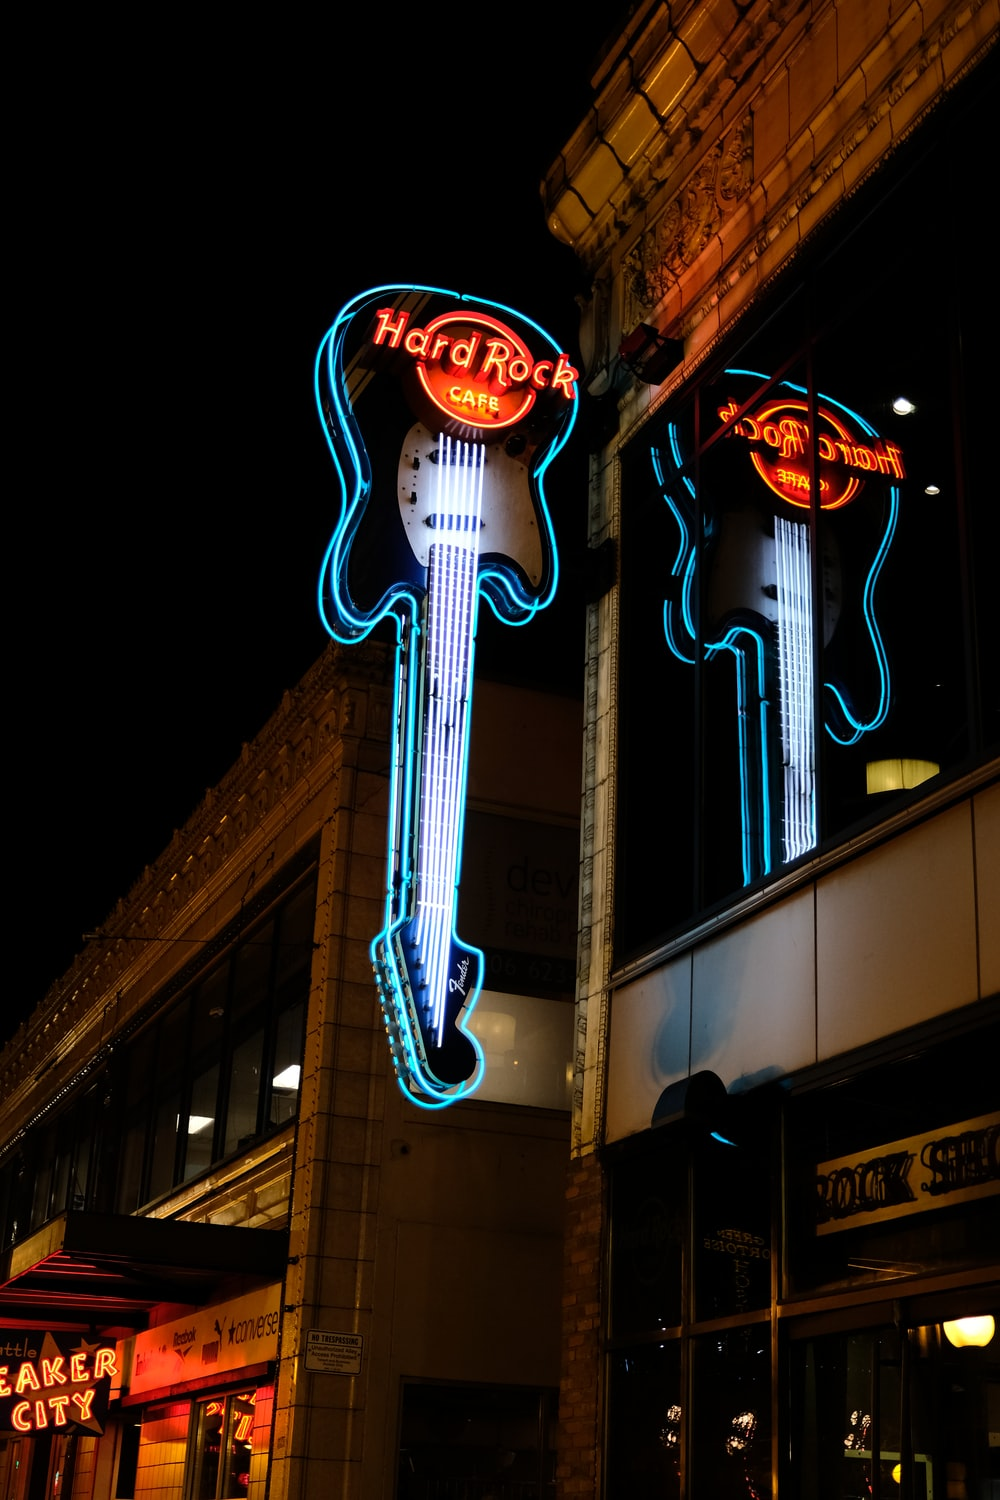 Hard Rock guitar signage